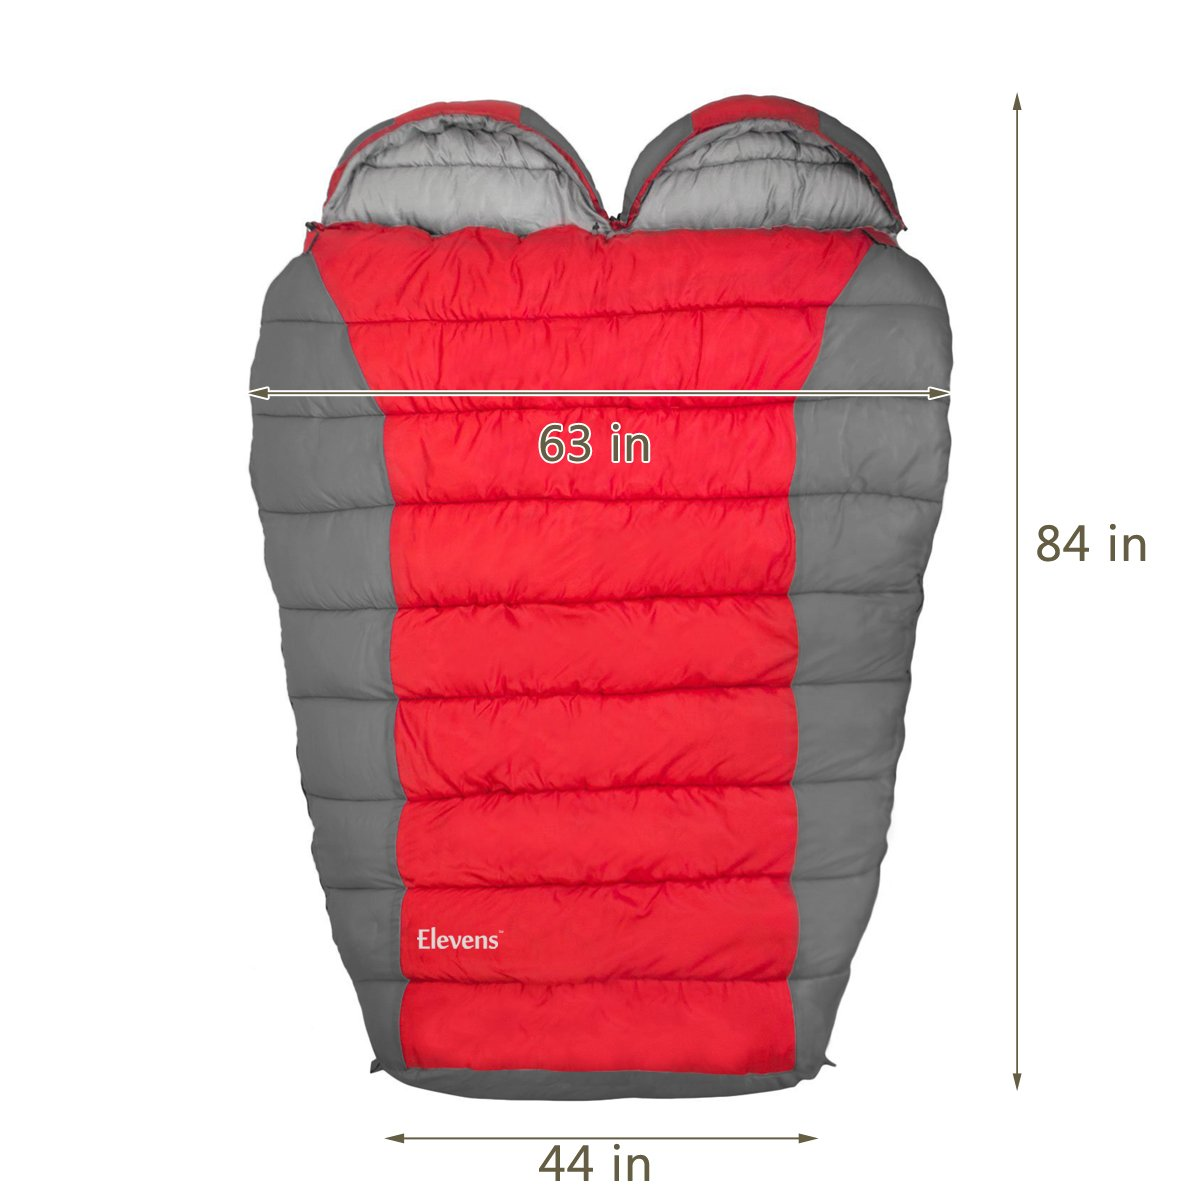 Sleeping Bag with Compression Sack, 0F Lightweight Mummy Bags for Adult Camping, Backpacking, Hiking, Traveling and Outdoor Activities